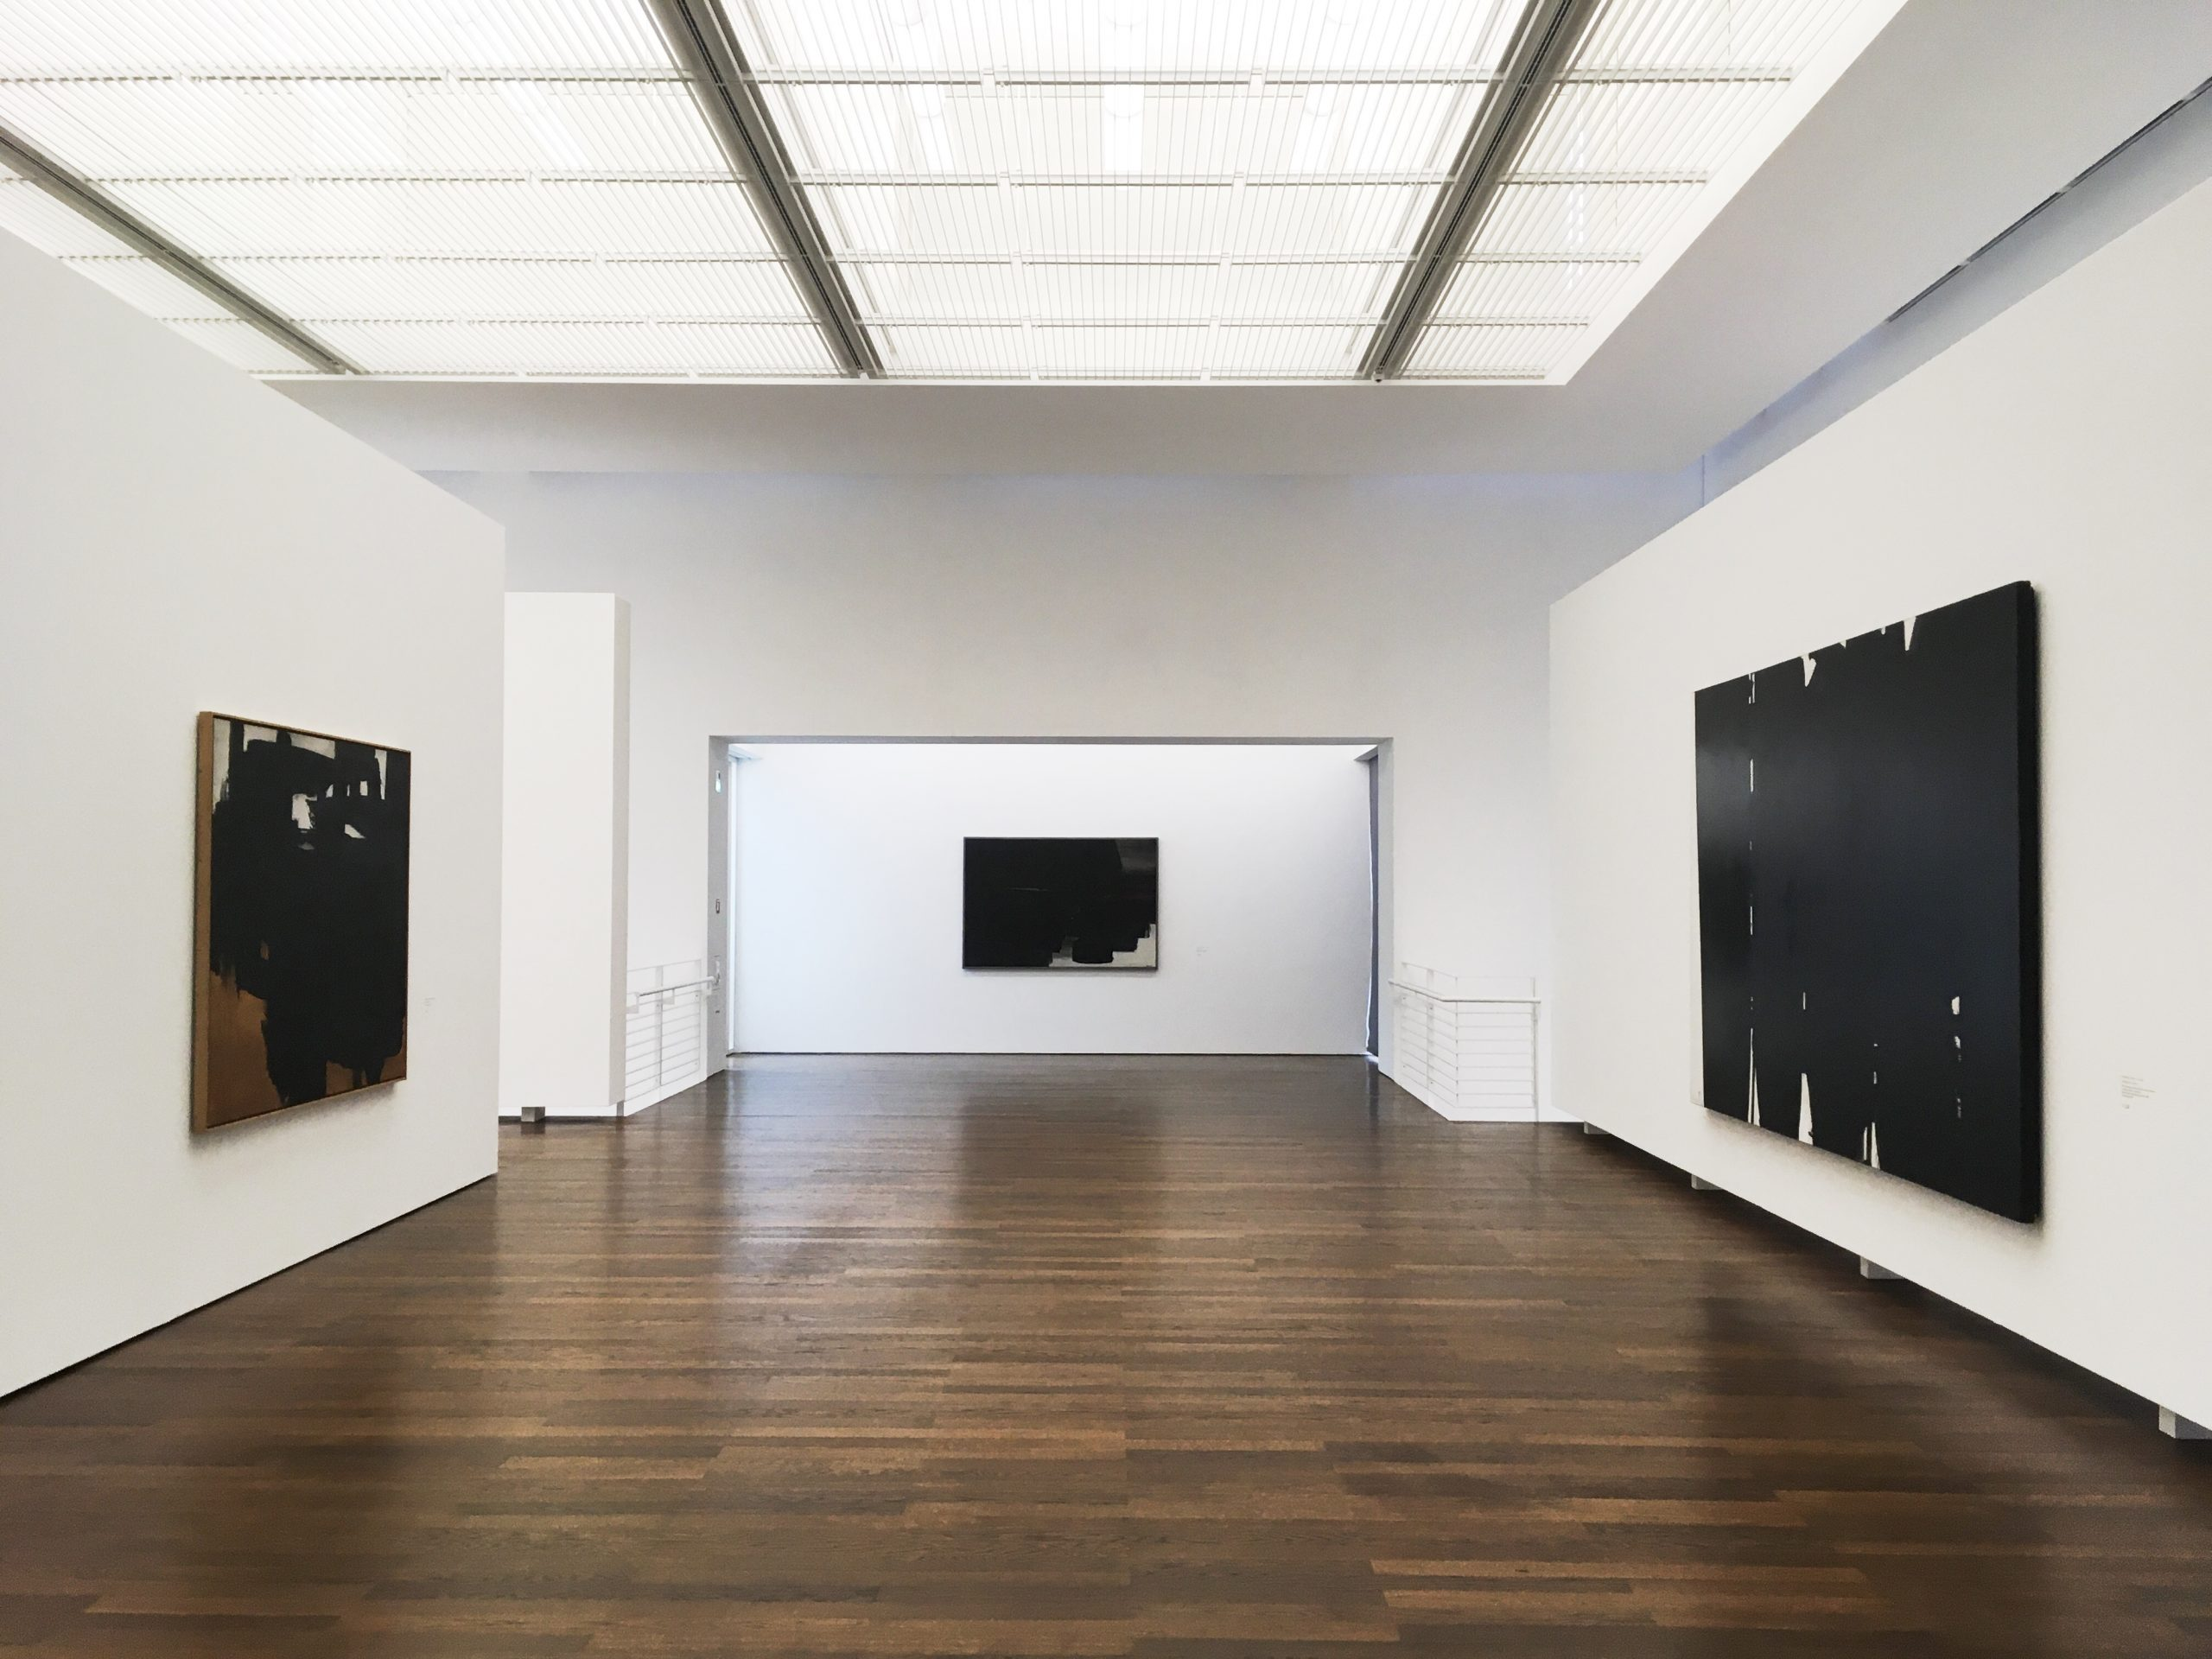 soulages_frieder burda_großformate